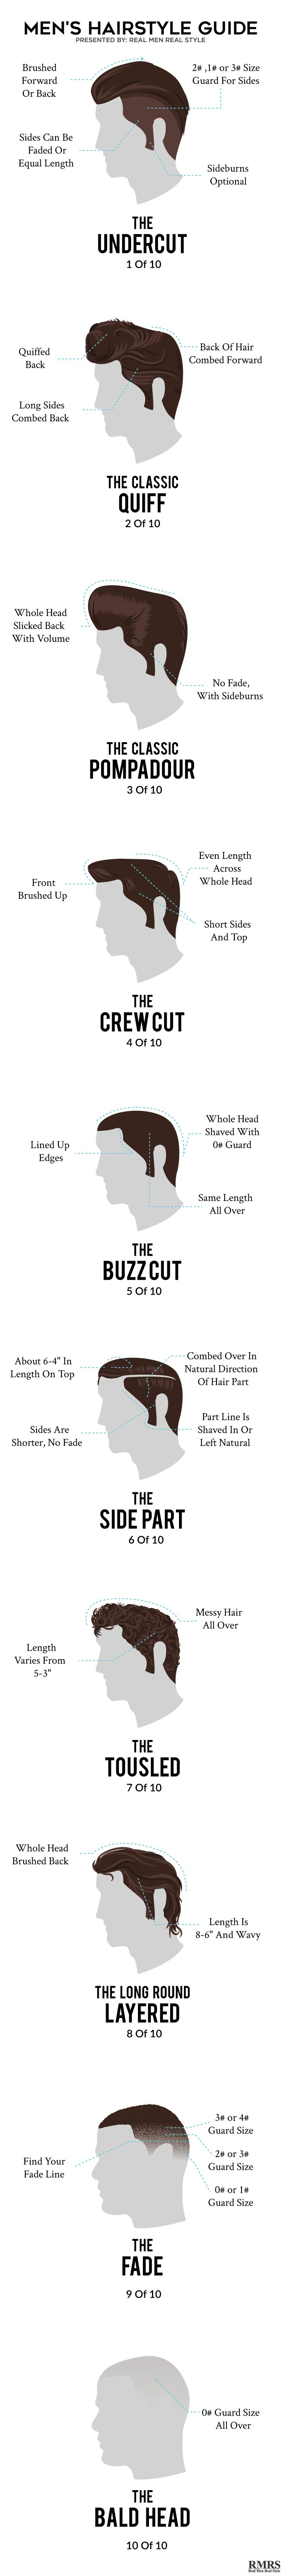 Men S Hairstyle Guide Infographic Hair Guide Long Hair Styles Men Mens Hairstyles